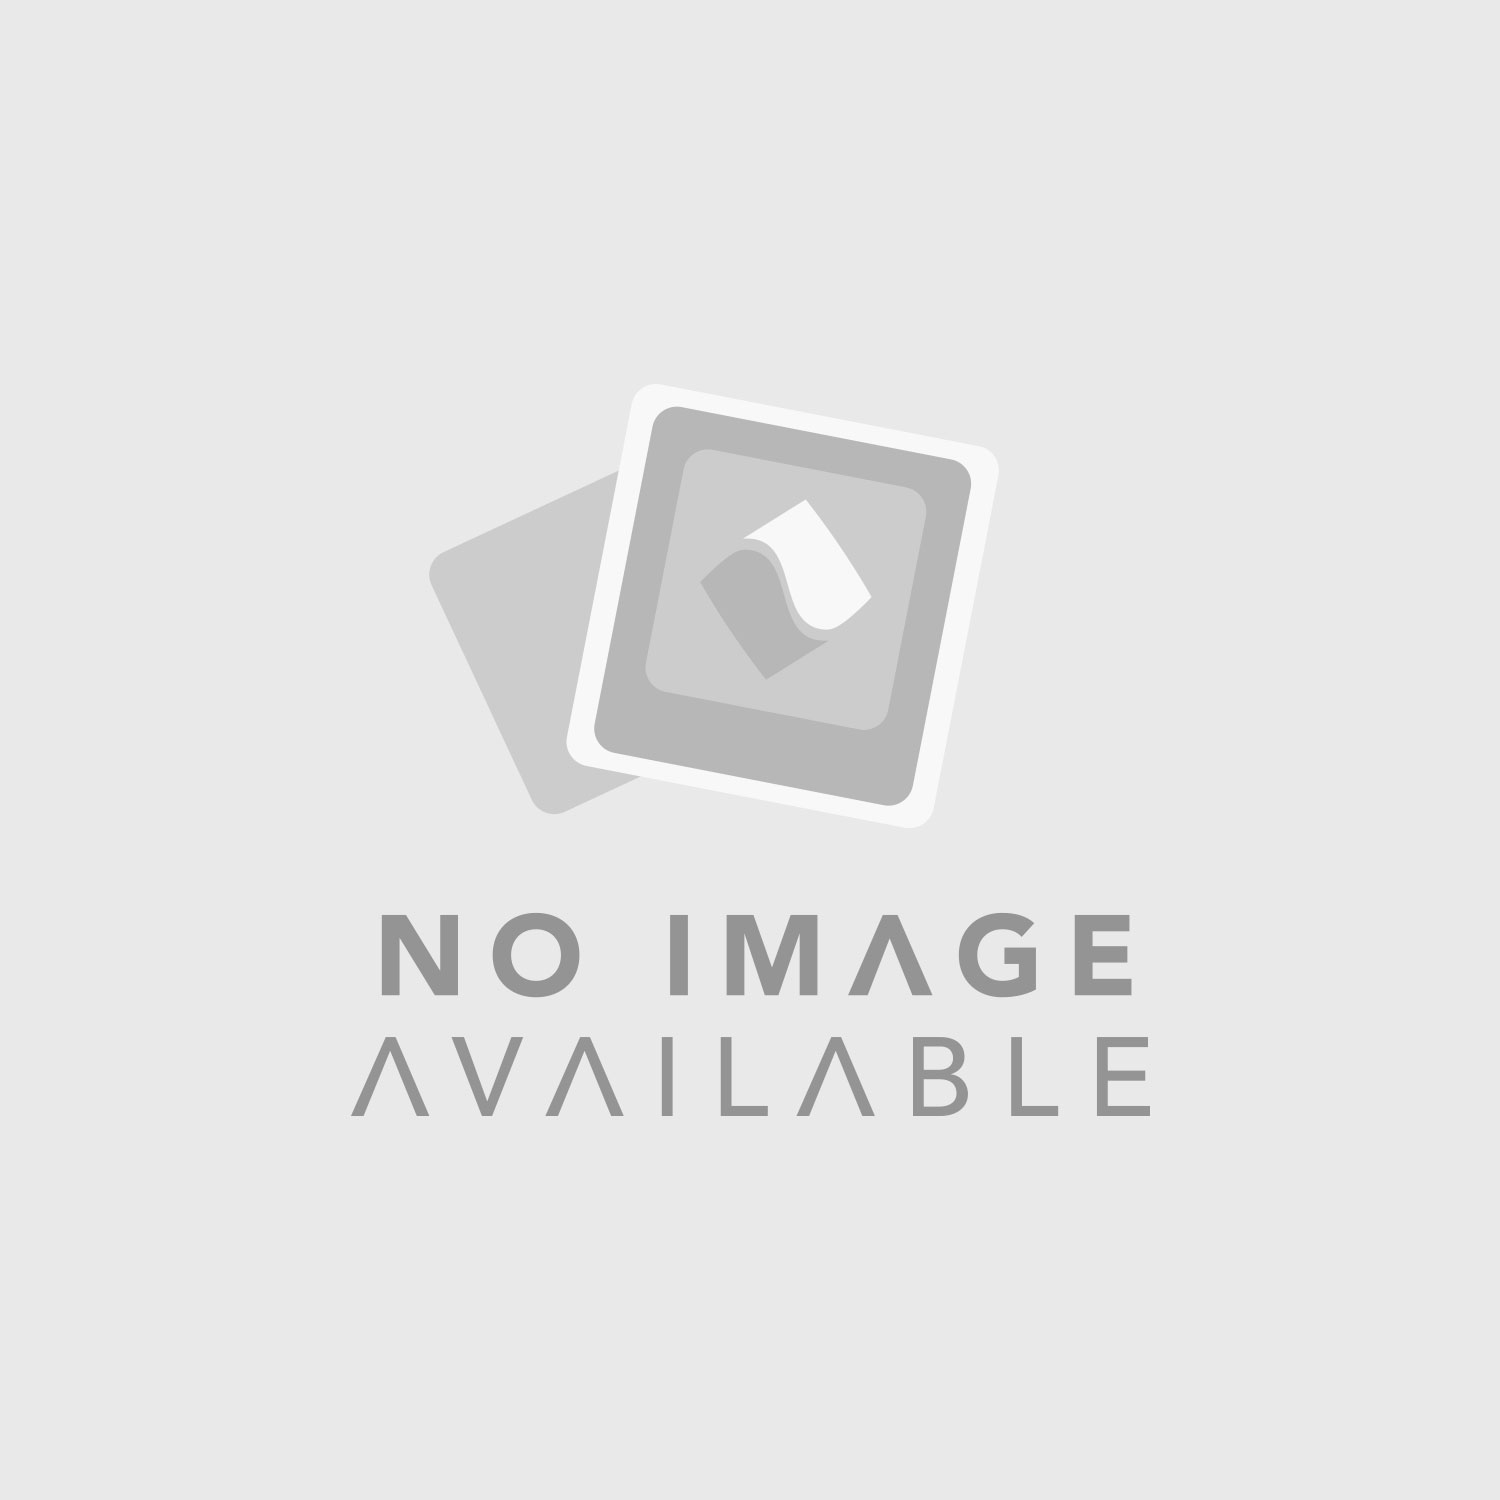 Avid Pro Tools 1-Year Subscription Renewal for Perpetual License (Boxed, Student/Teacher)